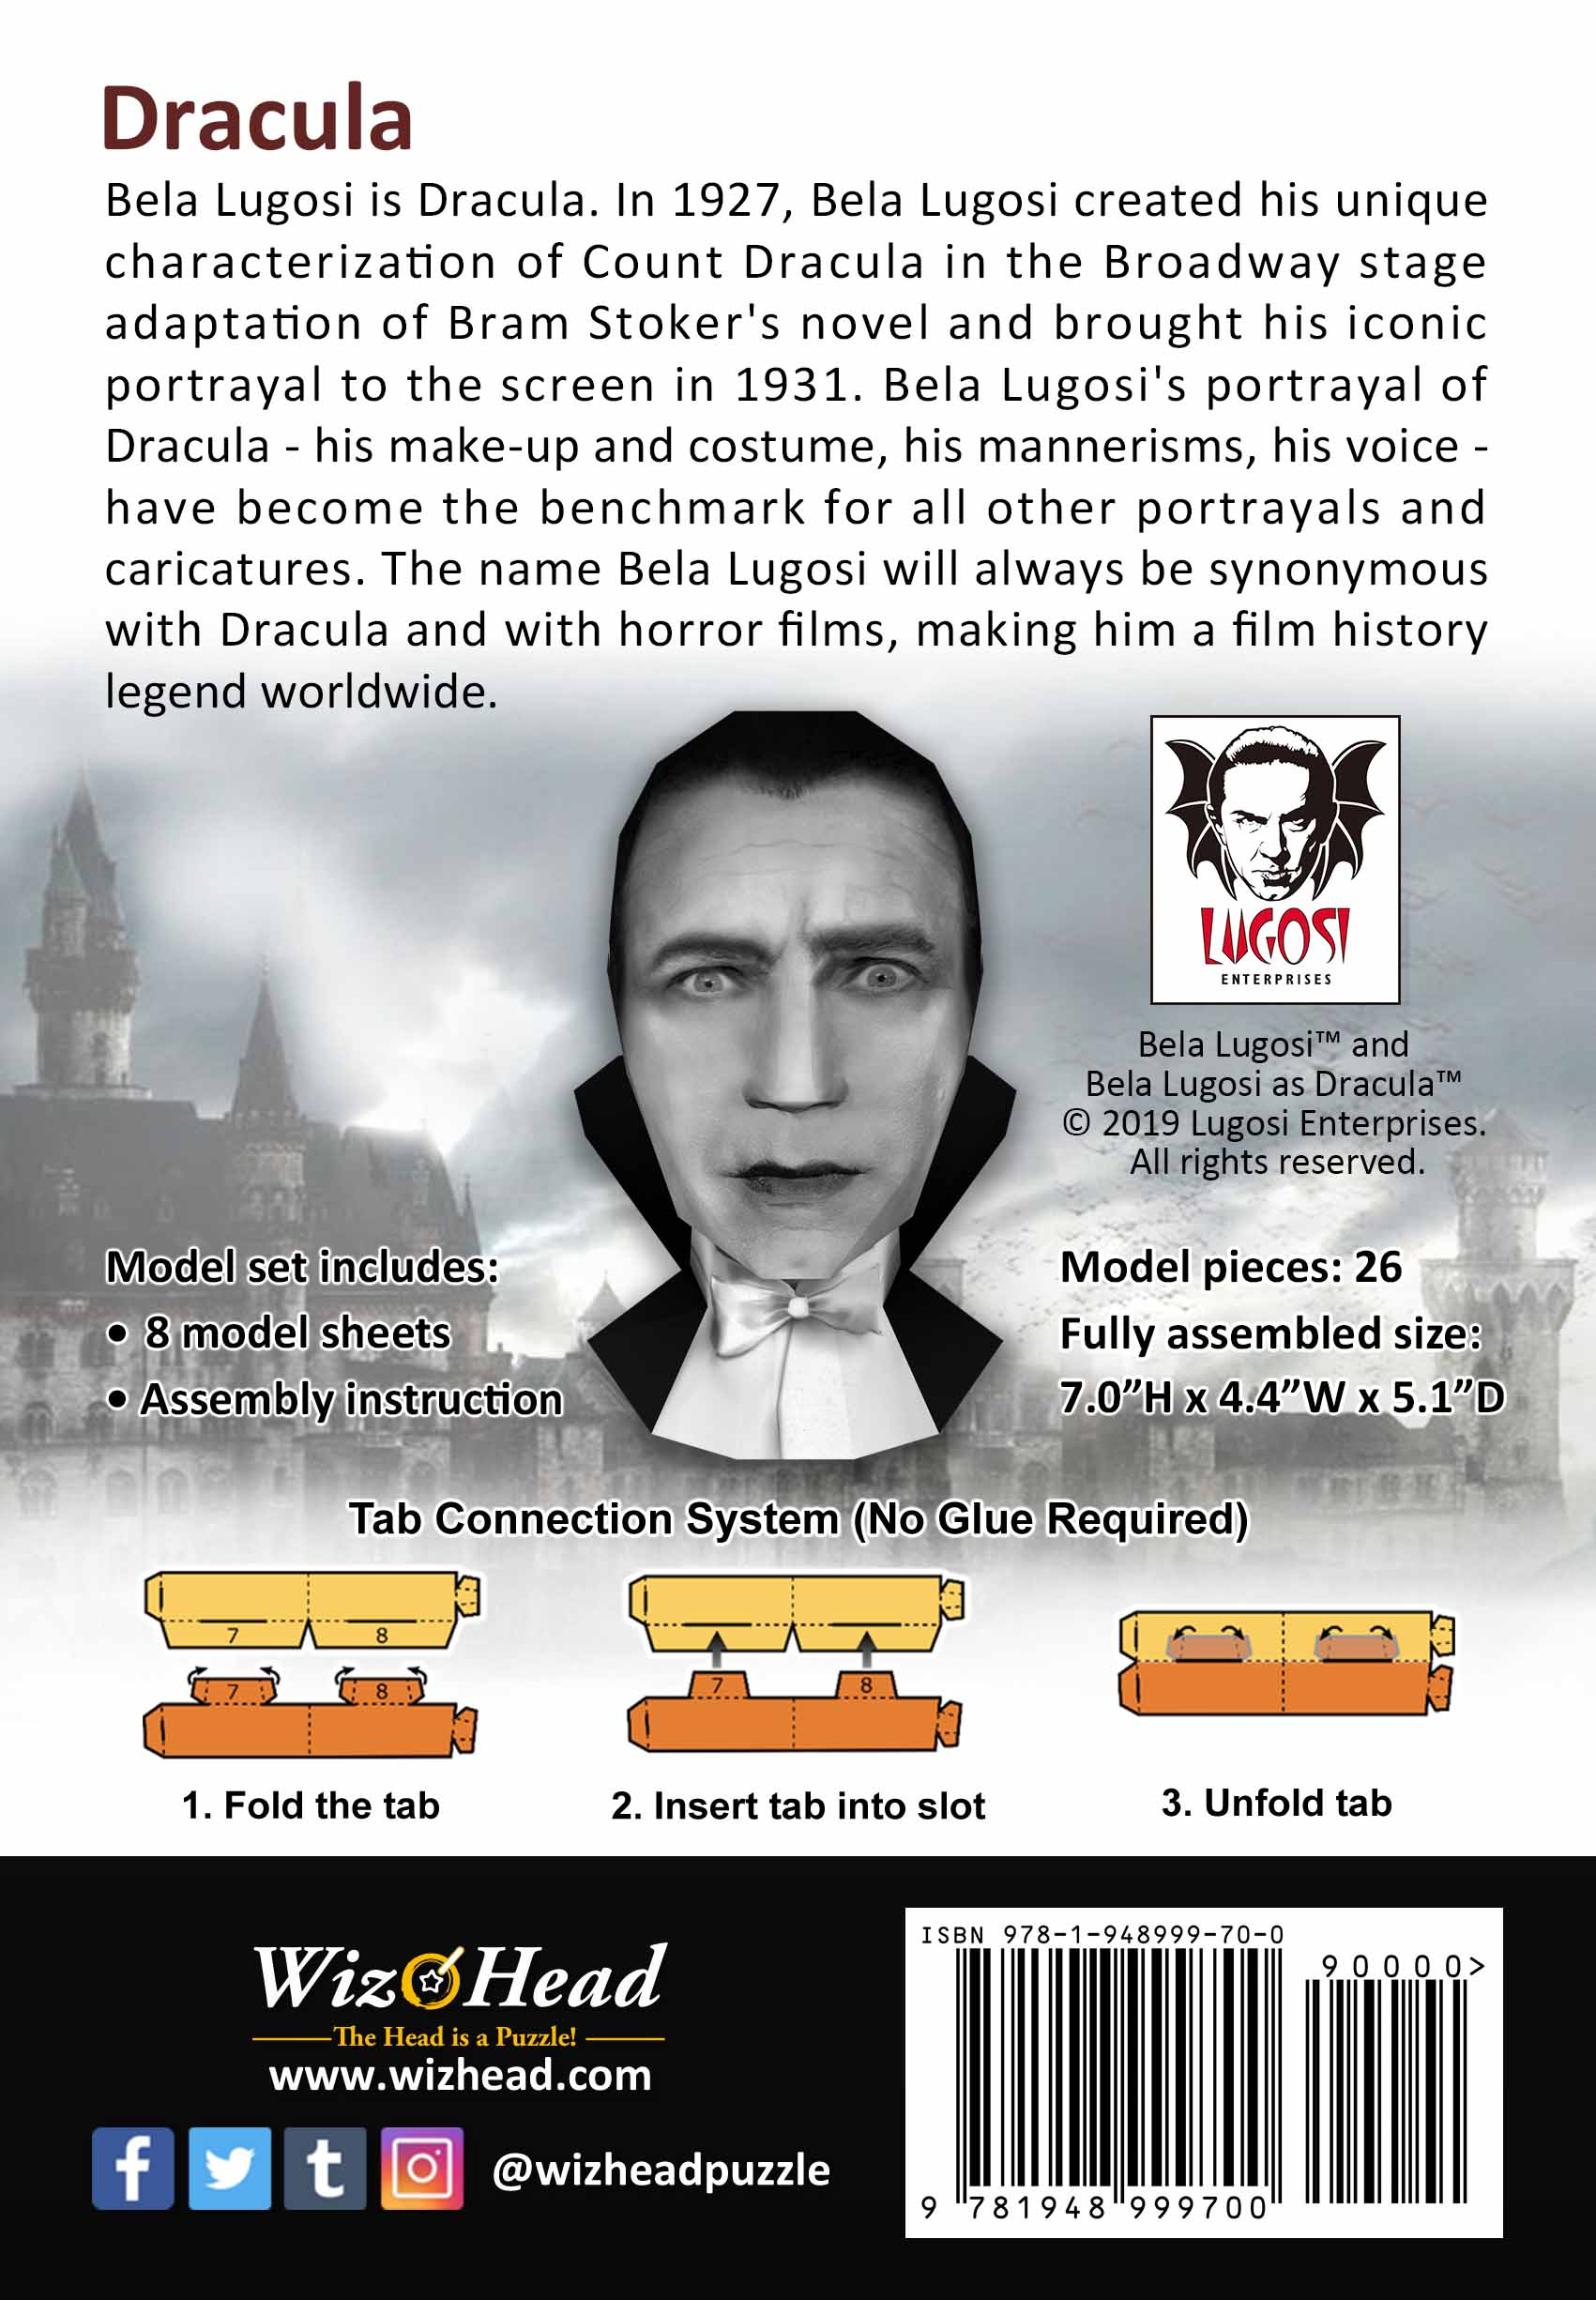 Bela Lugosi as Dracula (Full Size)